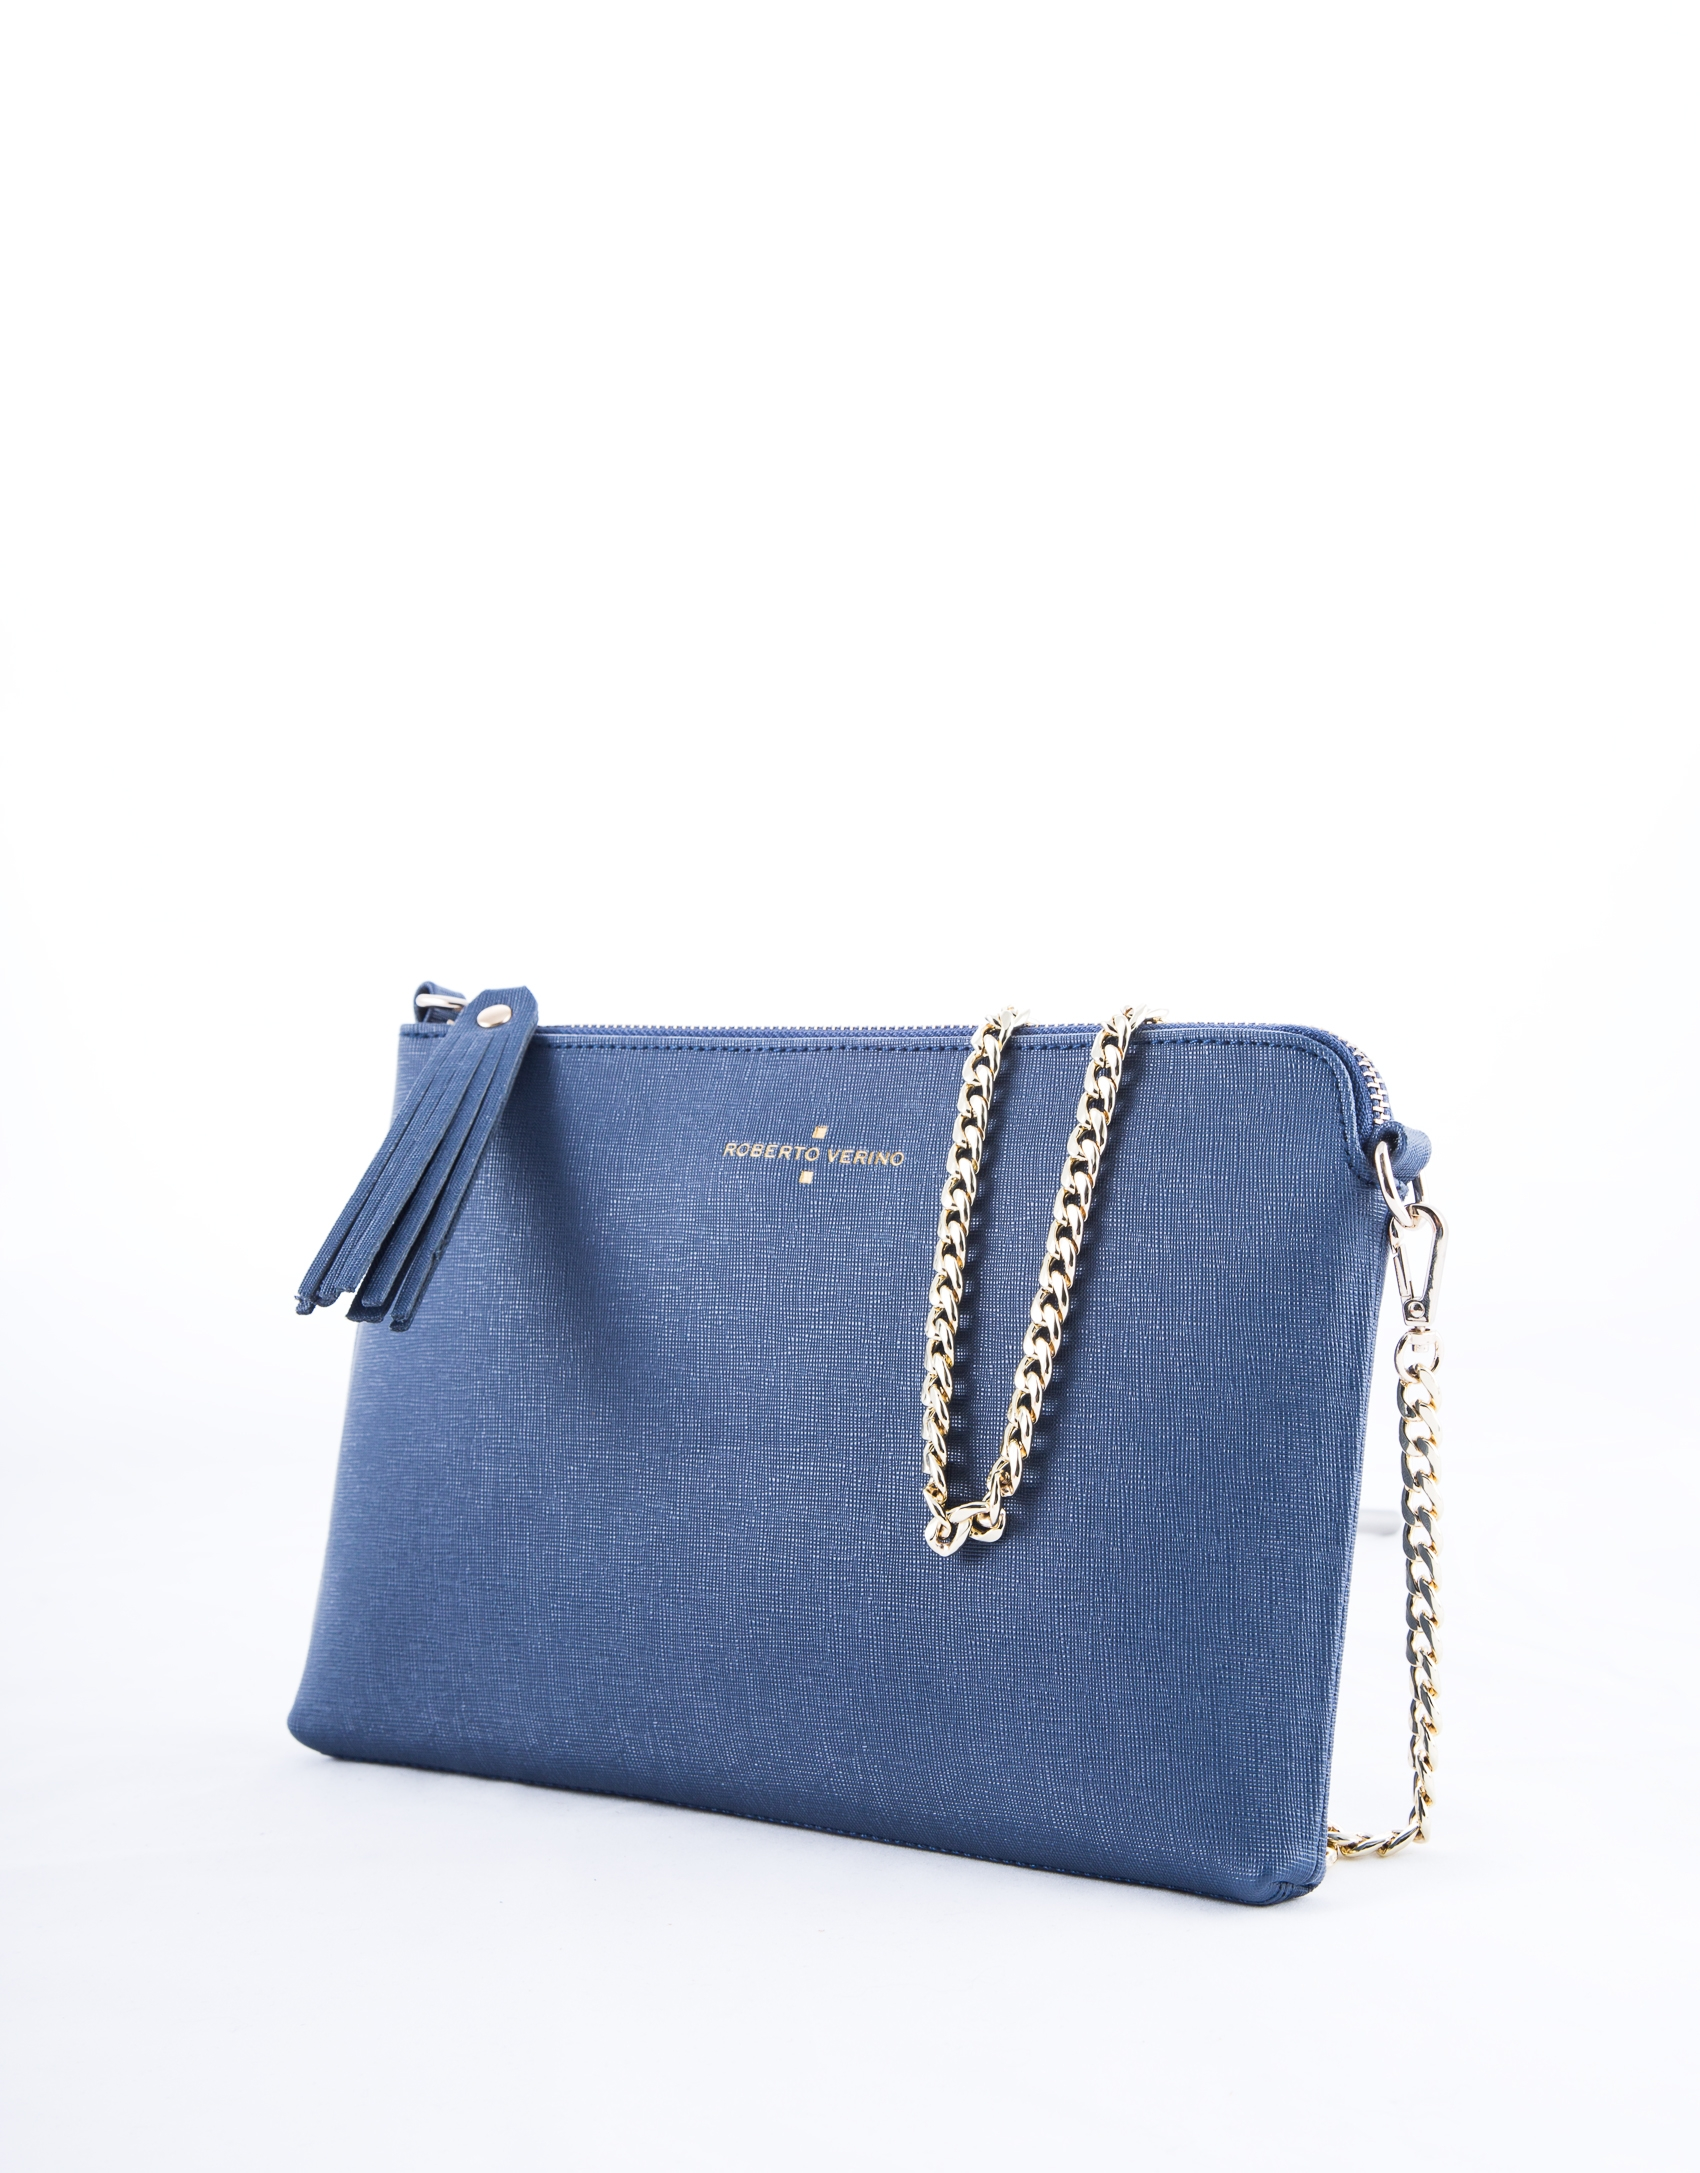 Navy blue leather Lisa clutch bag